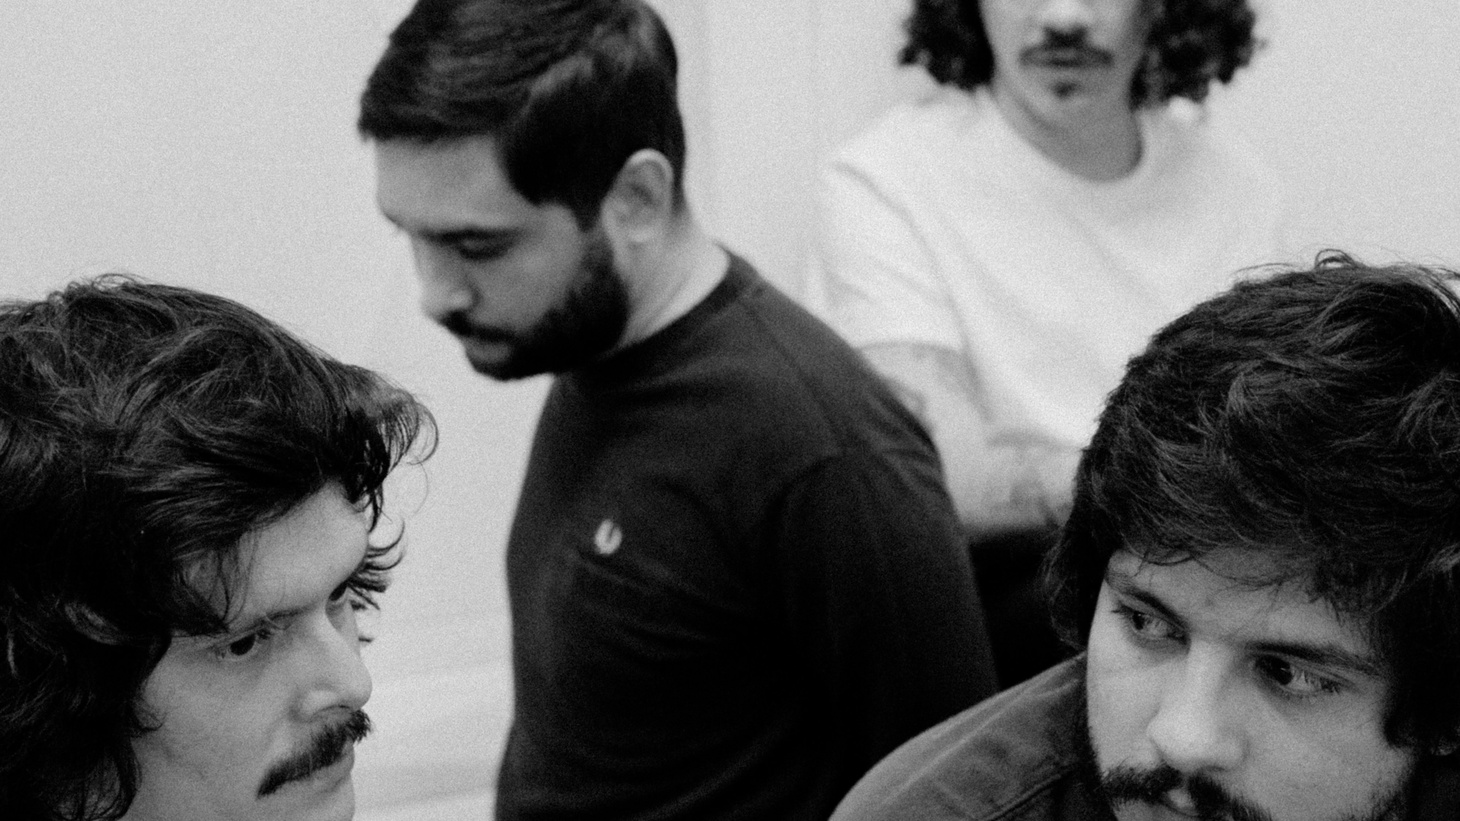 Costa Rica is a vacation destination that many Americans enjoy, so we thought we'd import a promising group from San Jose that has caught the shoegaze wave called Adiós Cometa.